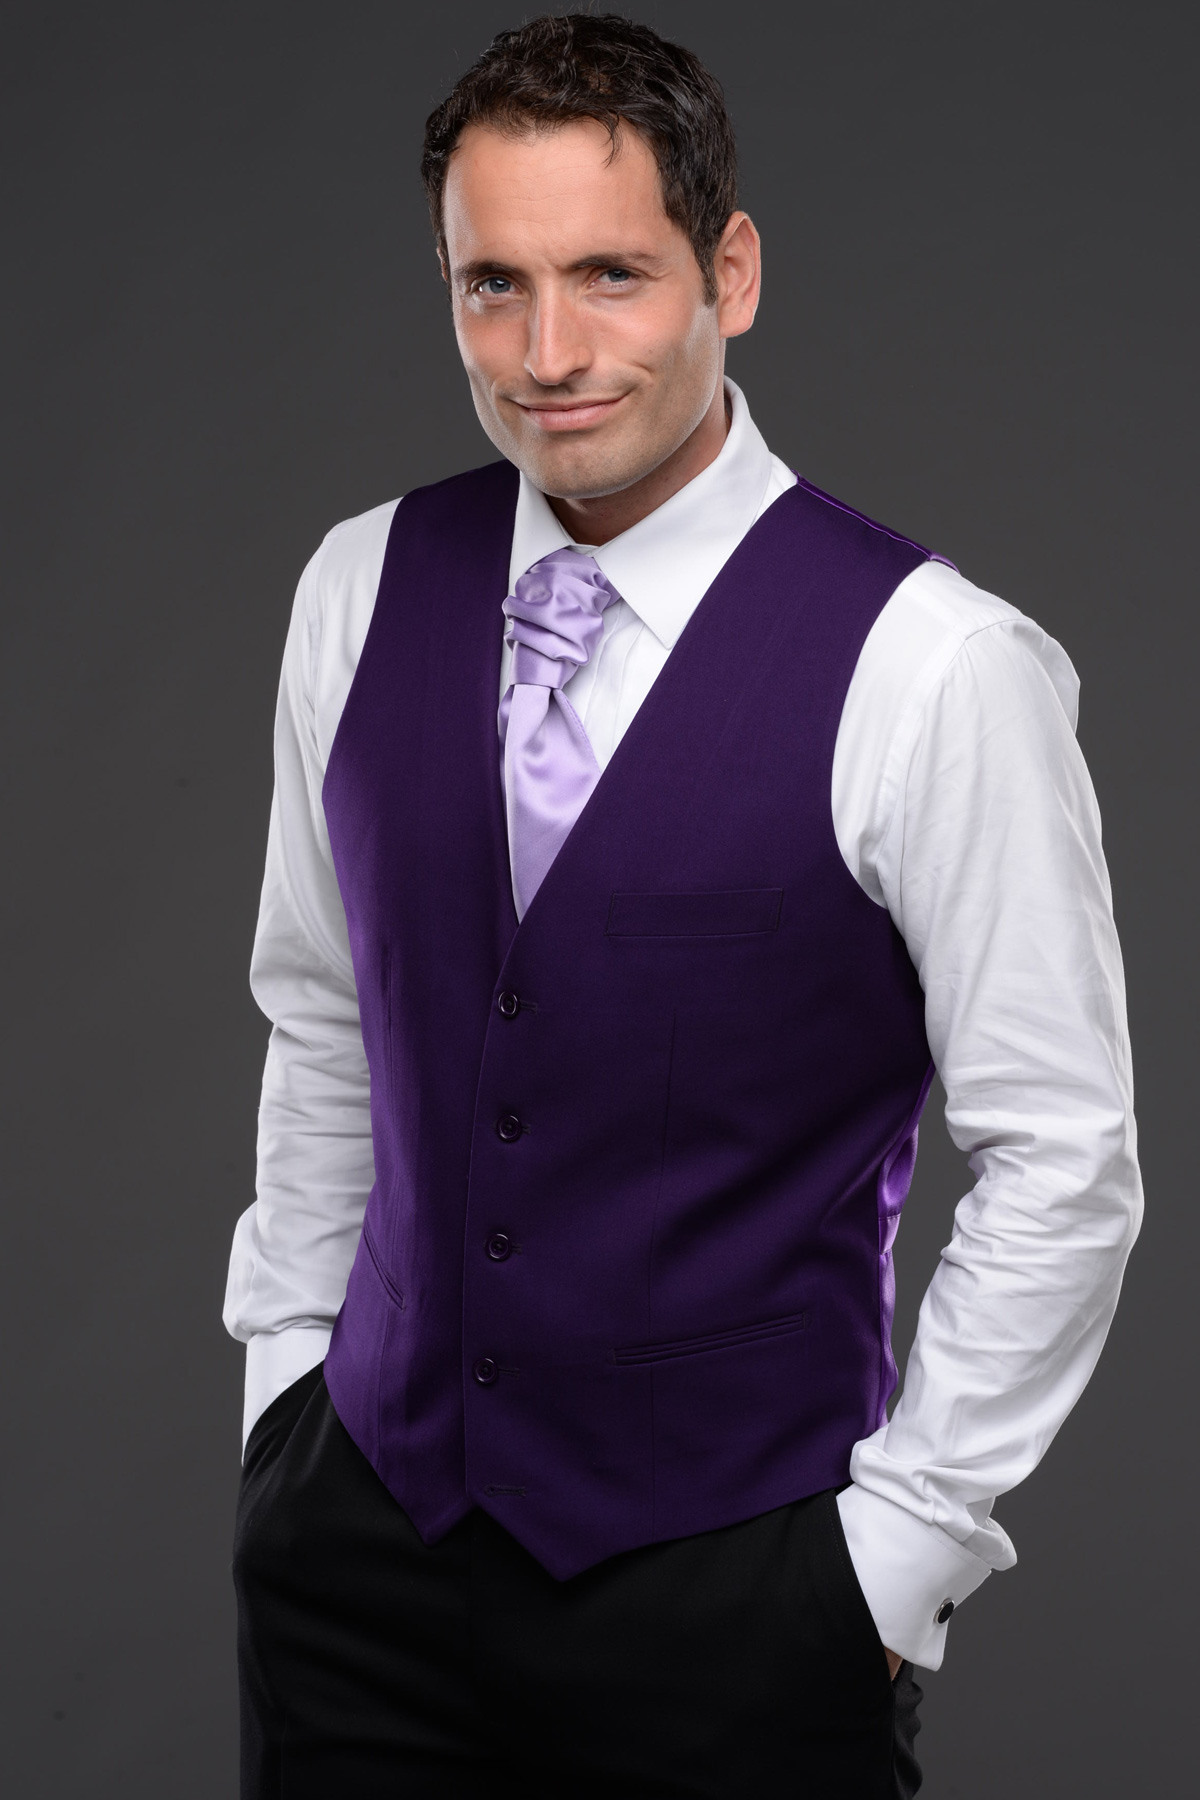 Find great deals on eBay for Party Waistcoat in Men's Vest and Clothing. Shop with confidence.